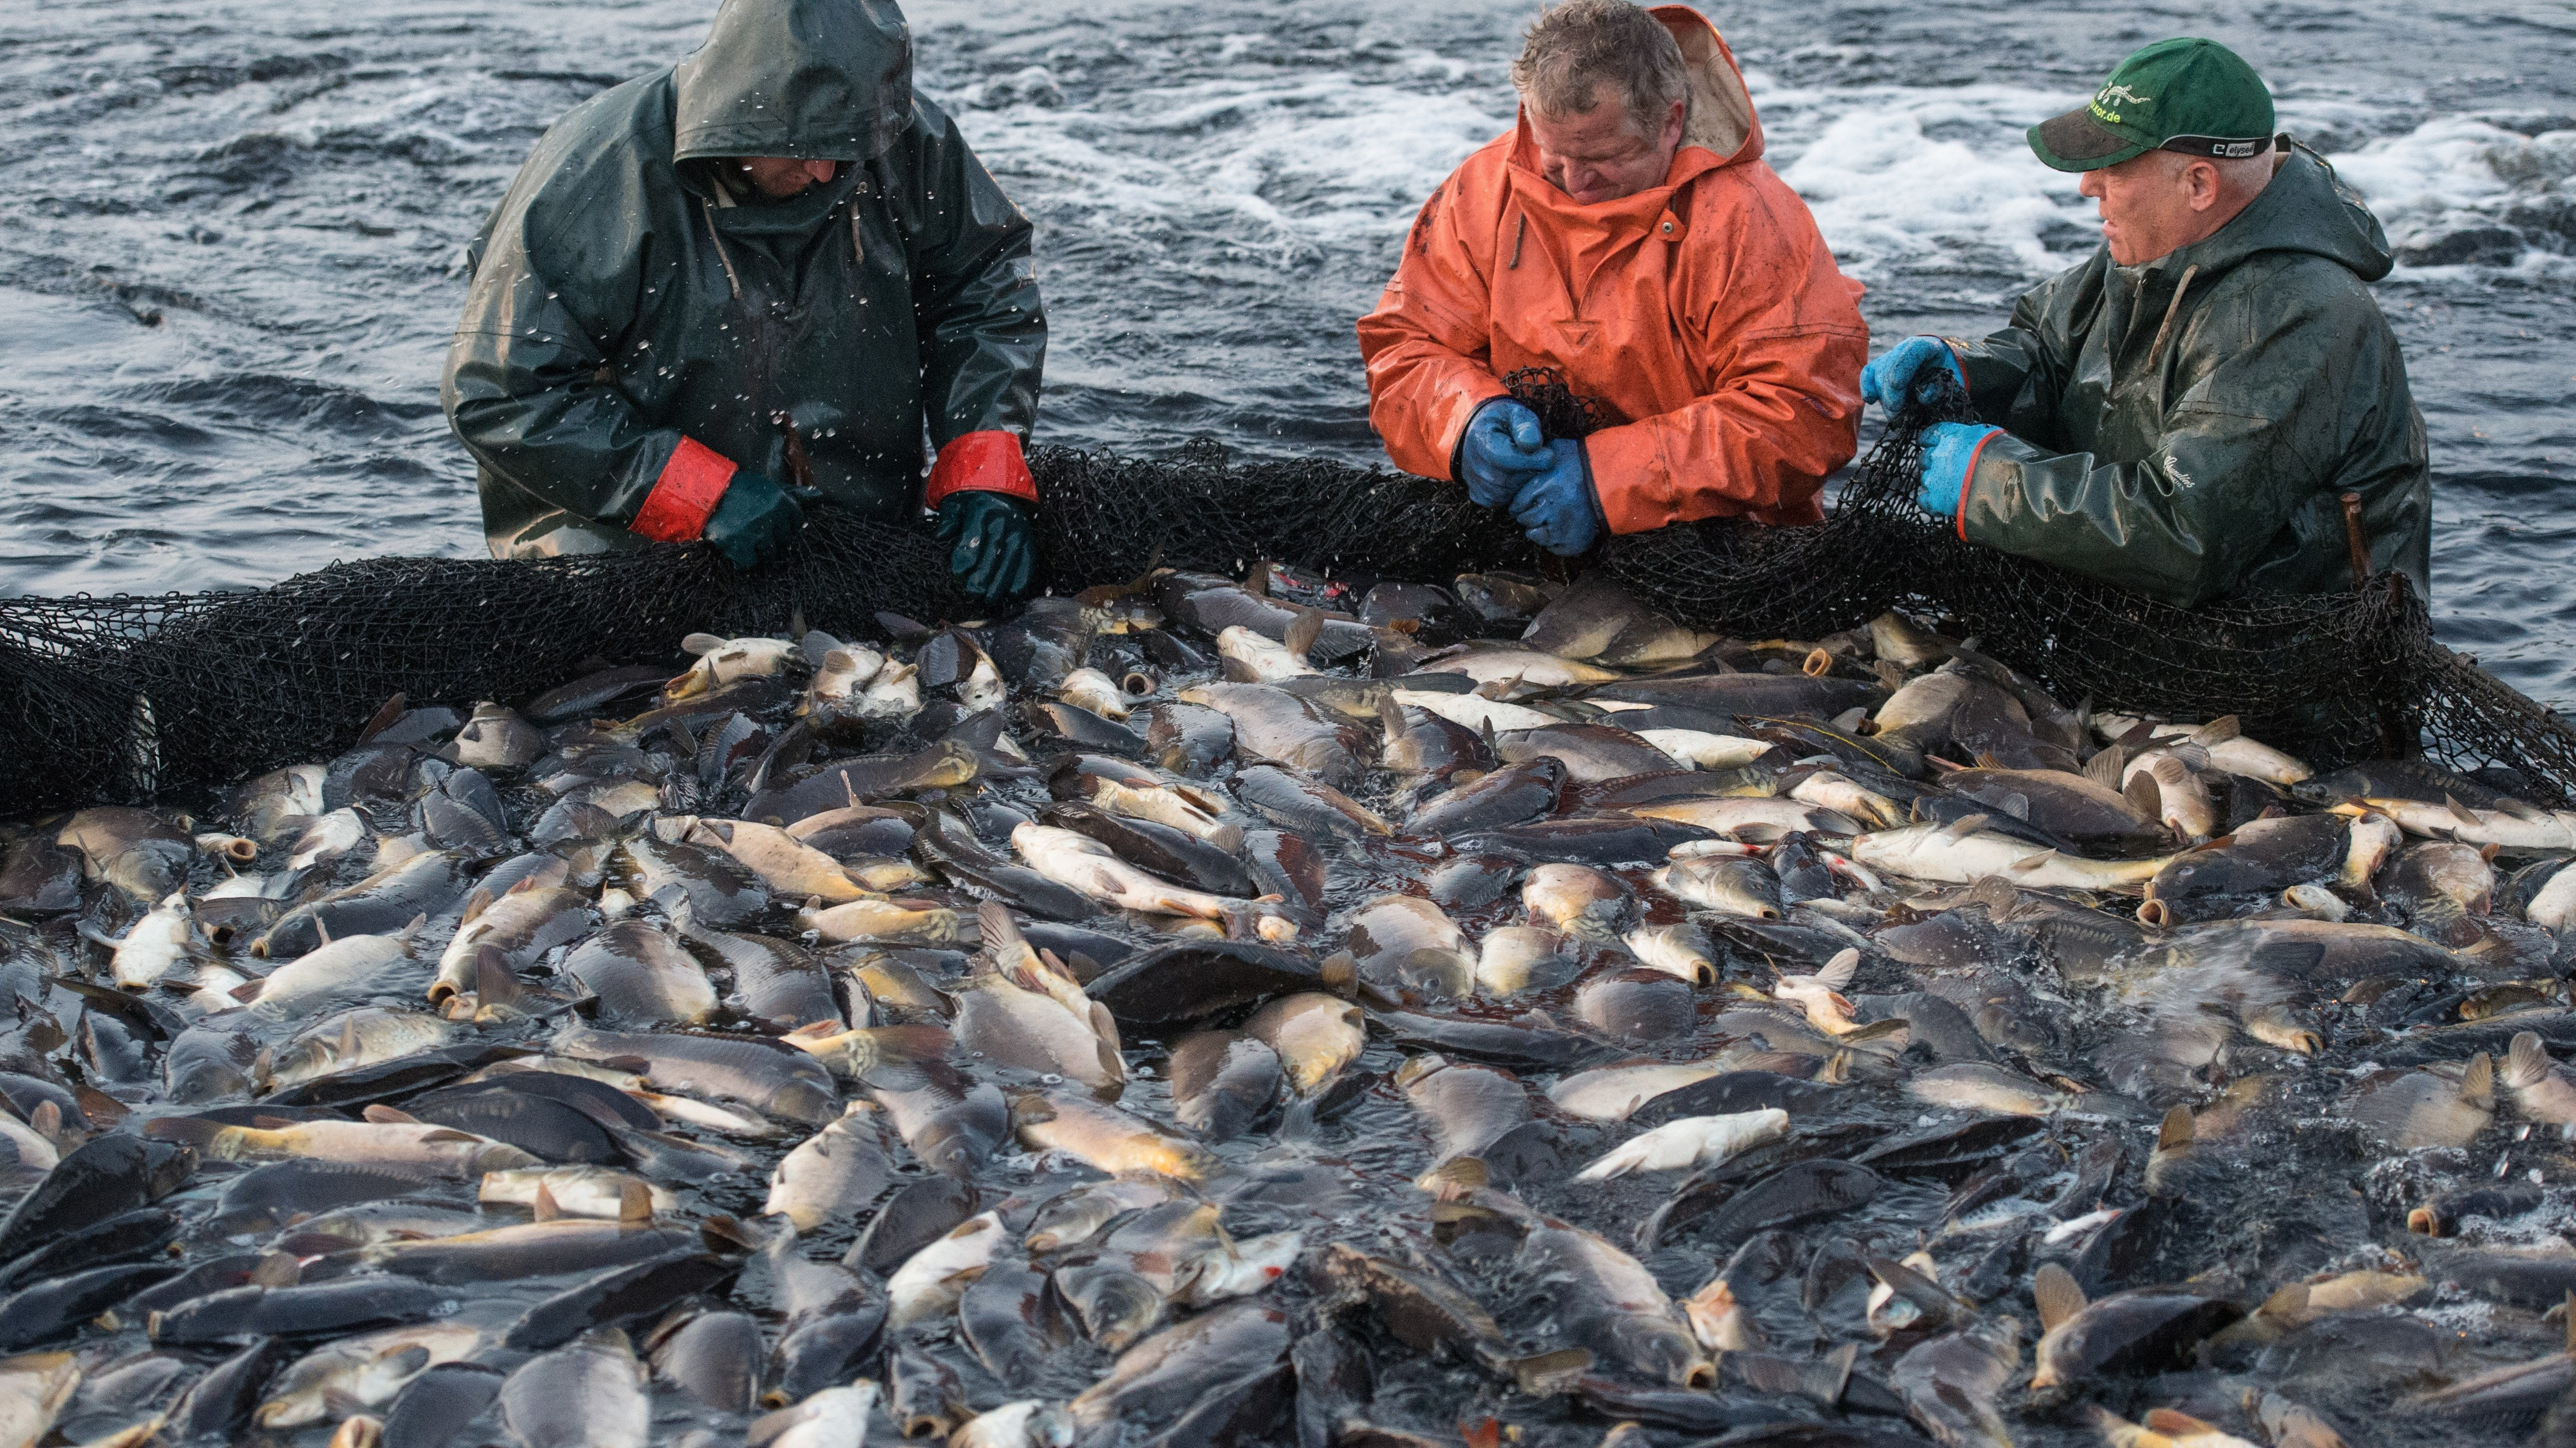 fishinh industry in canada essay Bp-344e quota licensing in canada's fishing industry prepared by claude emery political and social affairs division september 1993.